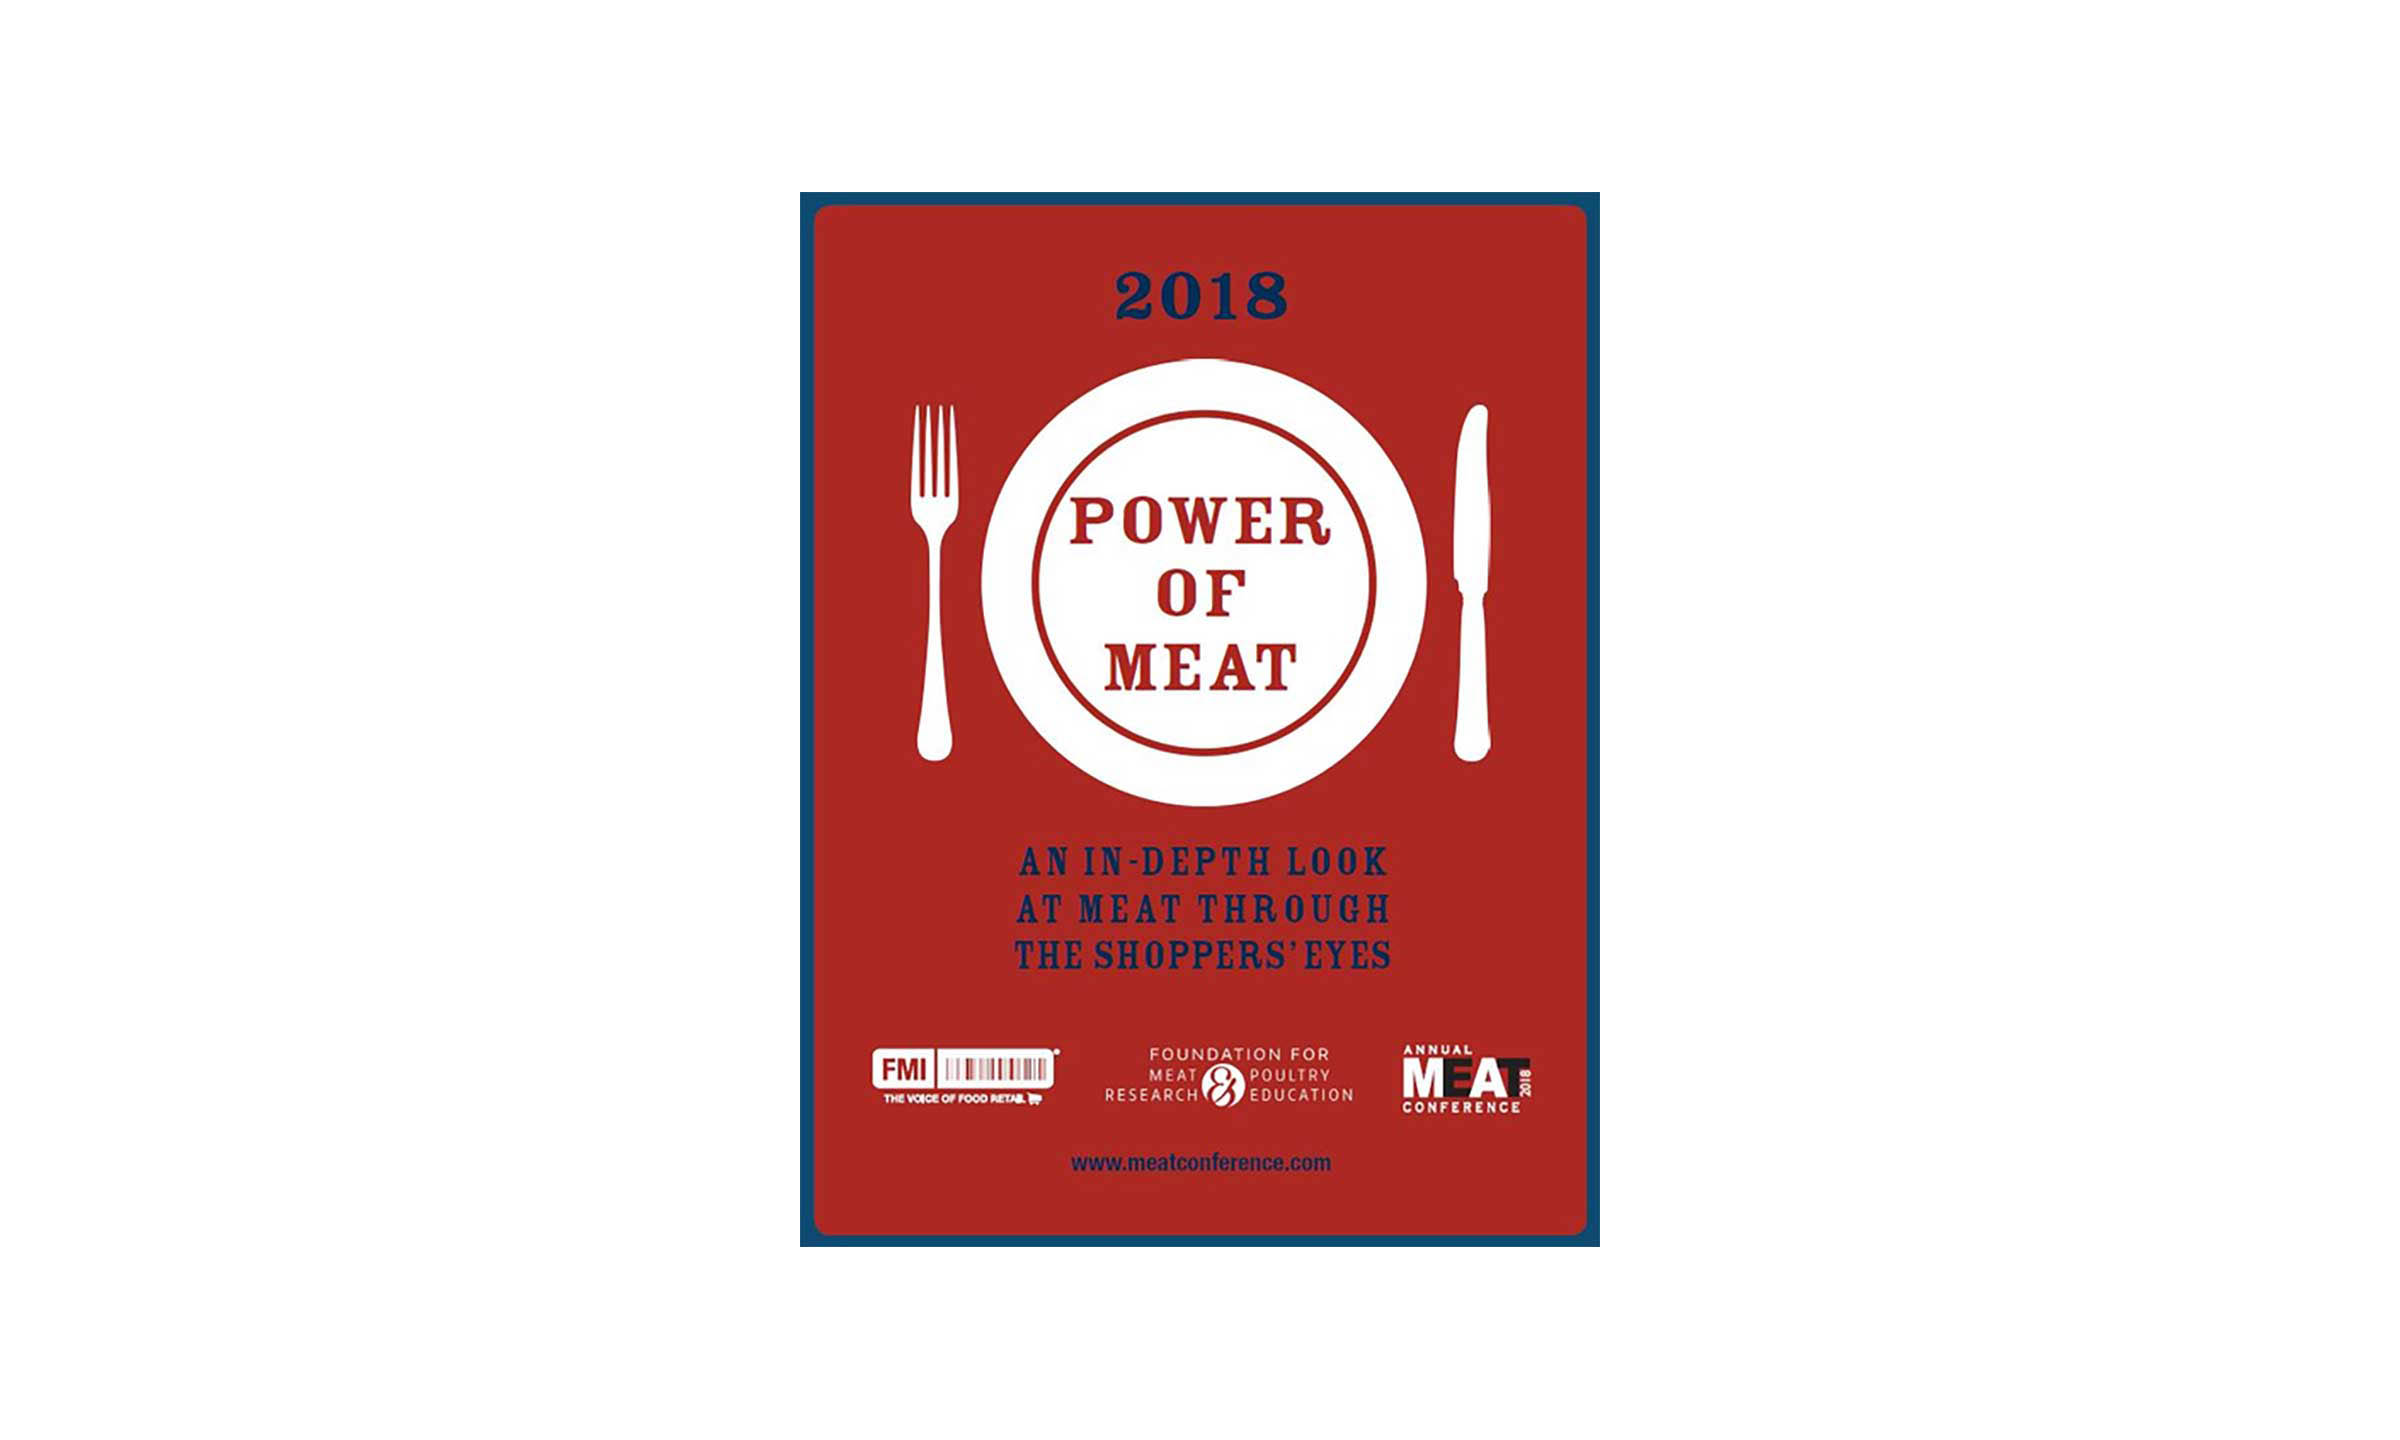 Power of Meat 2018 cover